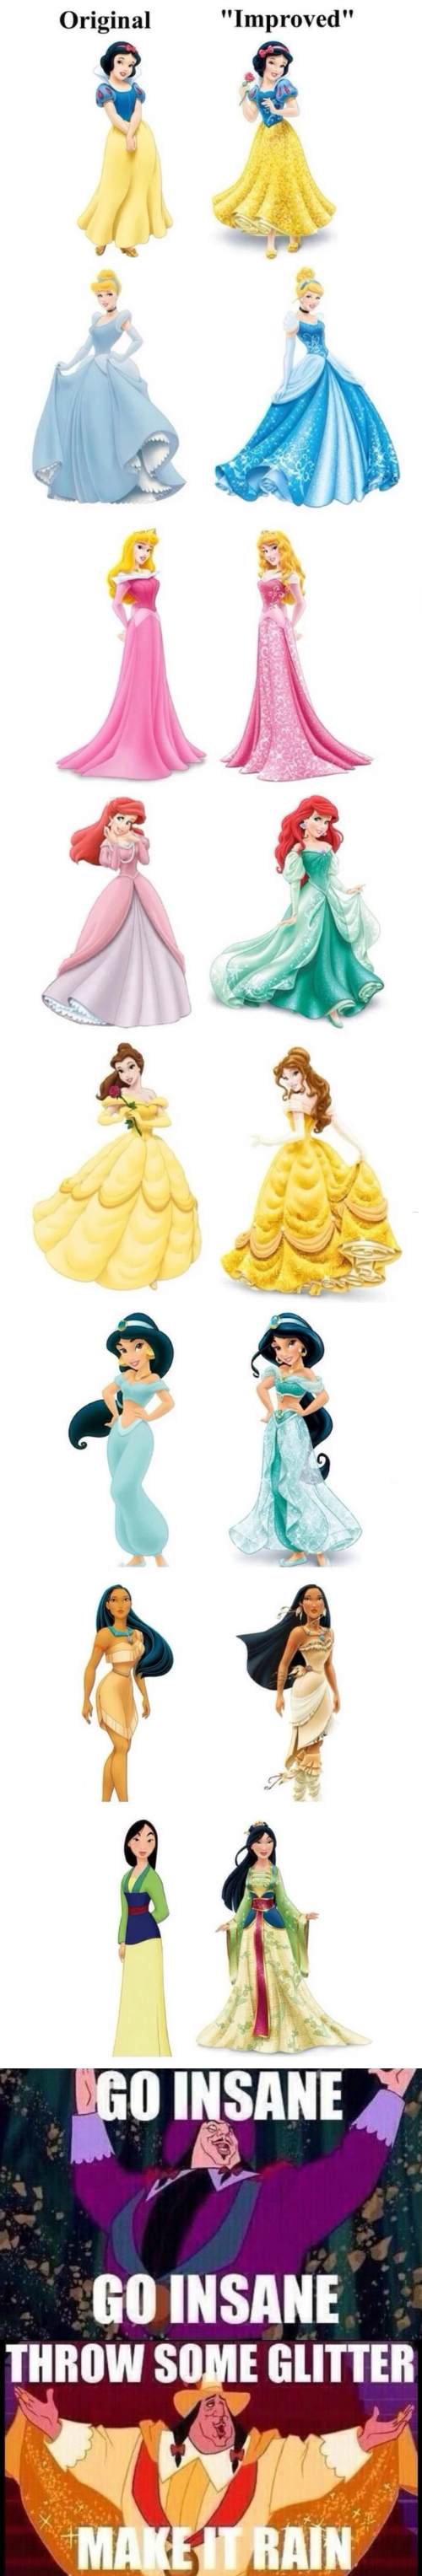 disney disney princesses - 8391128832